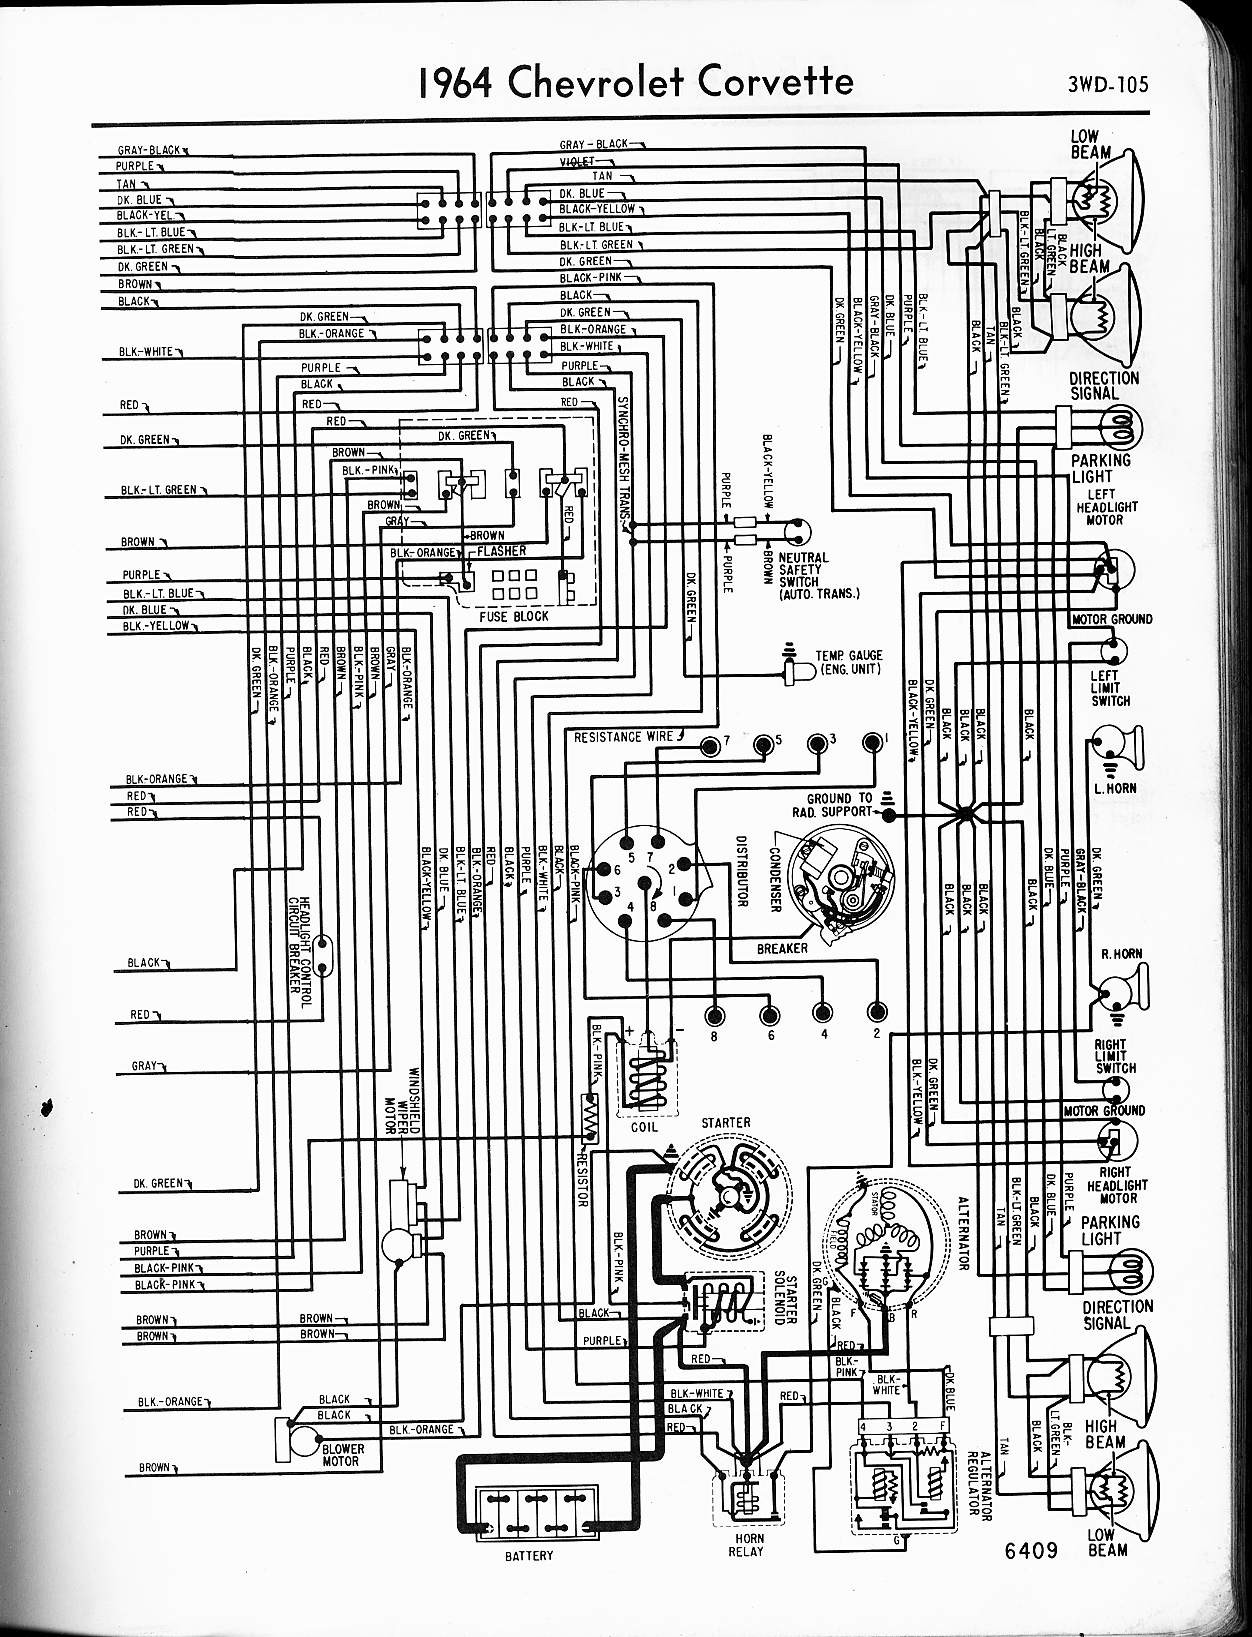 Chevy Sel Engine Wiring Diagram Library Diesel Starter 1972 Corvette Wiper 1959 Of